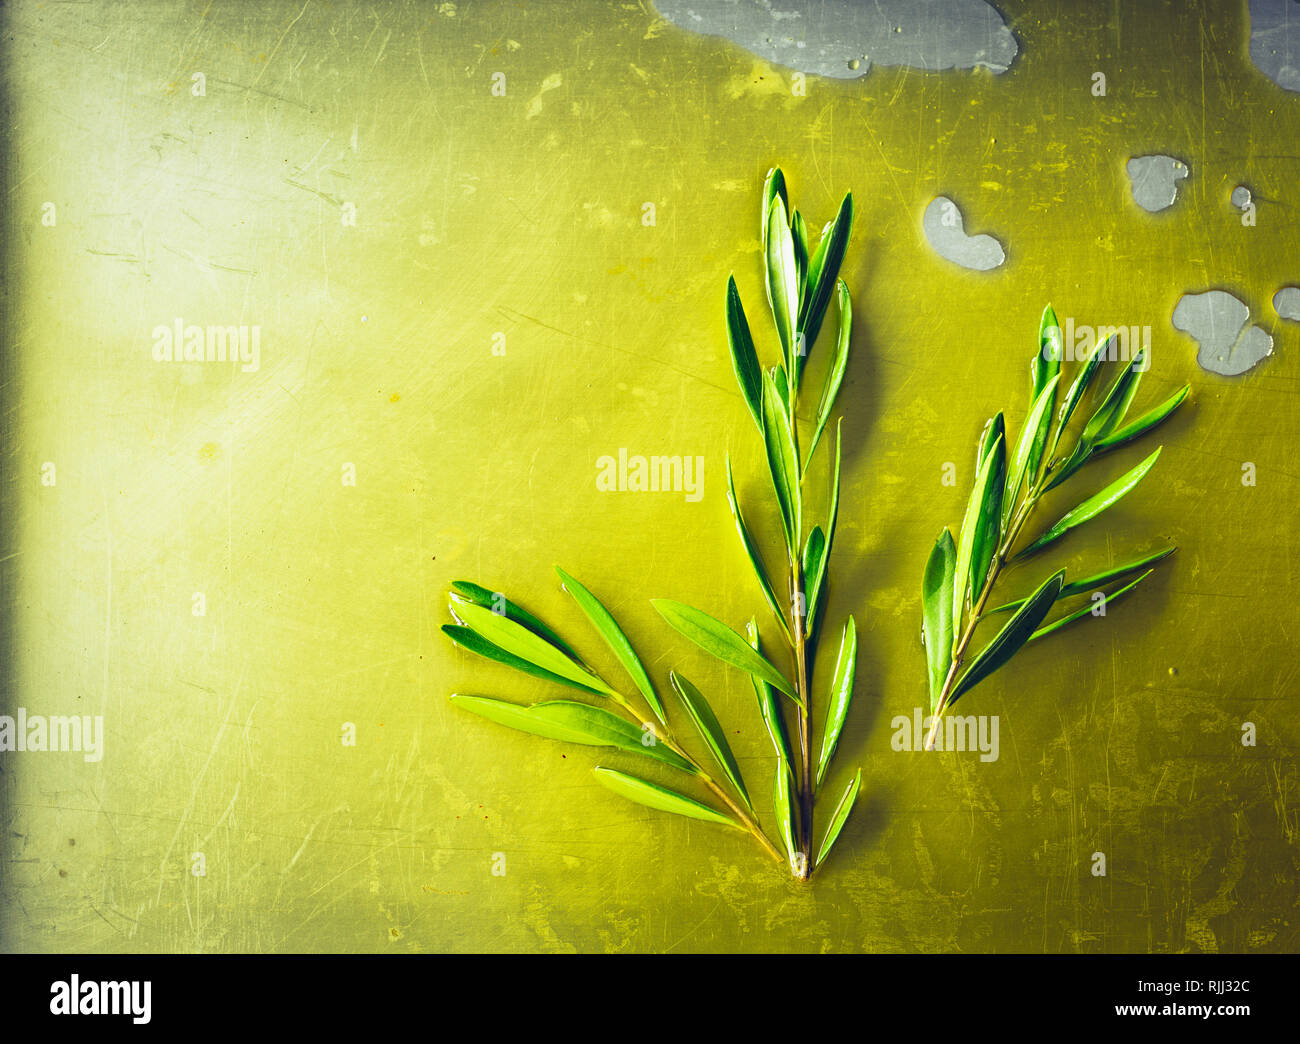 Olive oil puddle with olive branch and twig on metal background - Stock Image